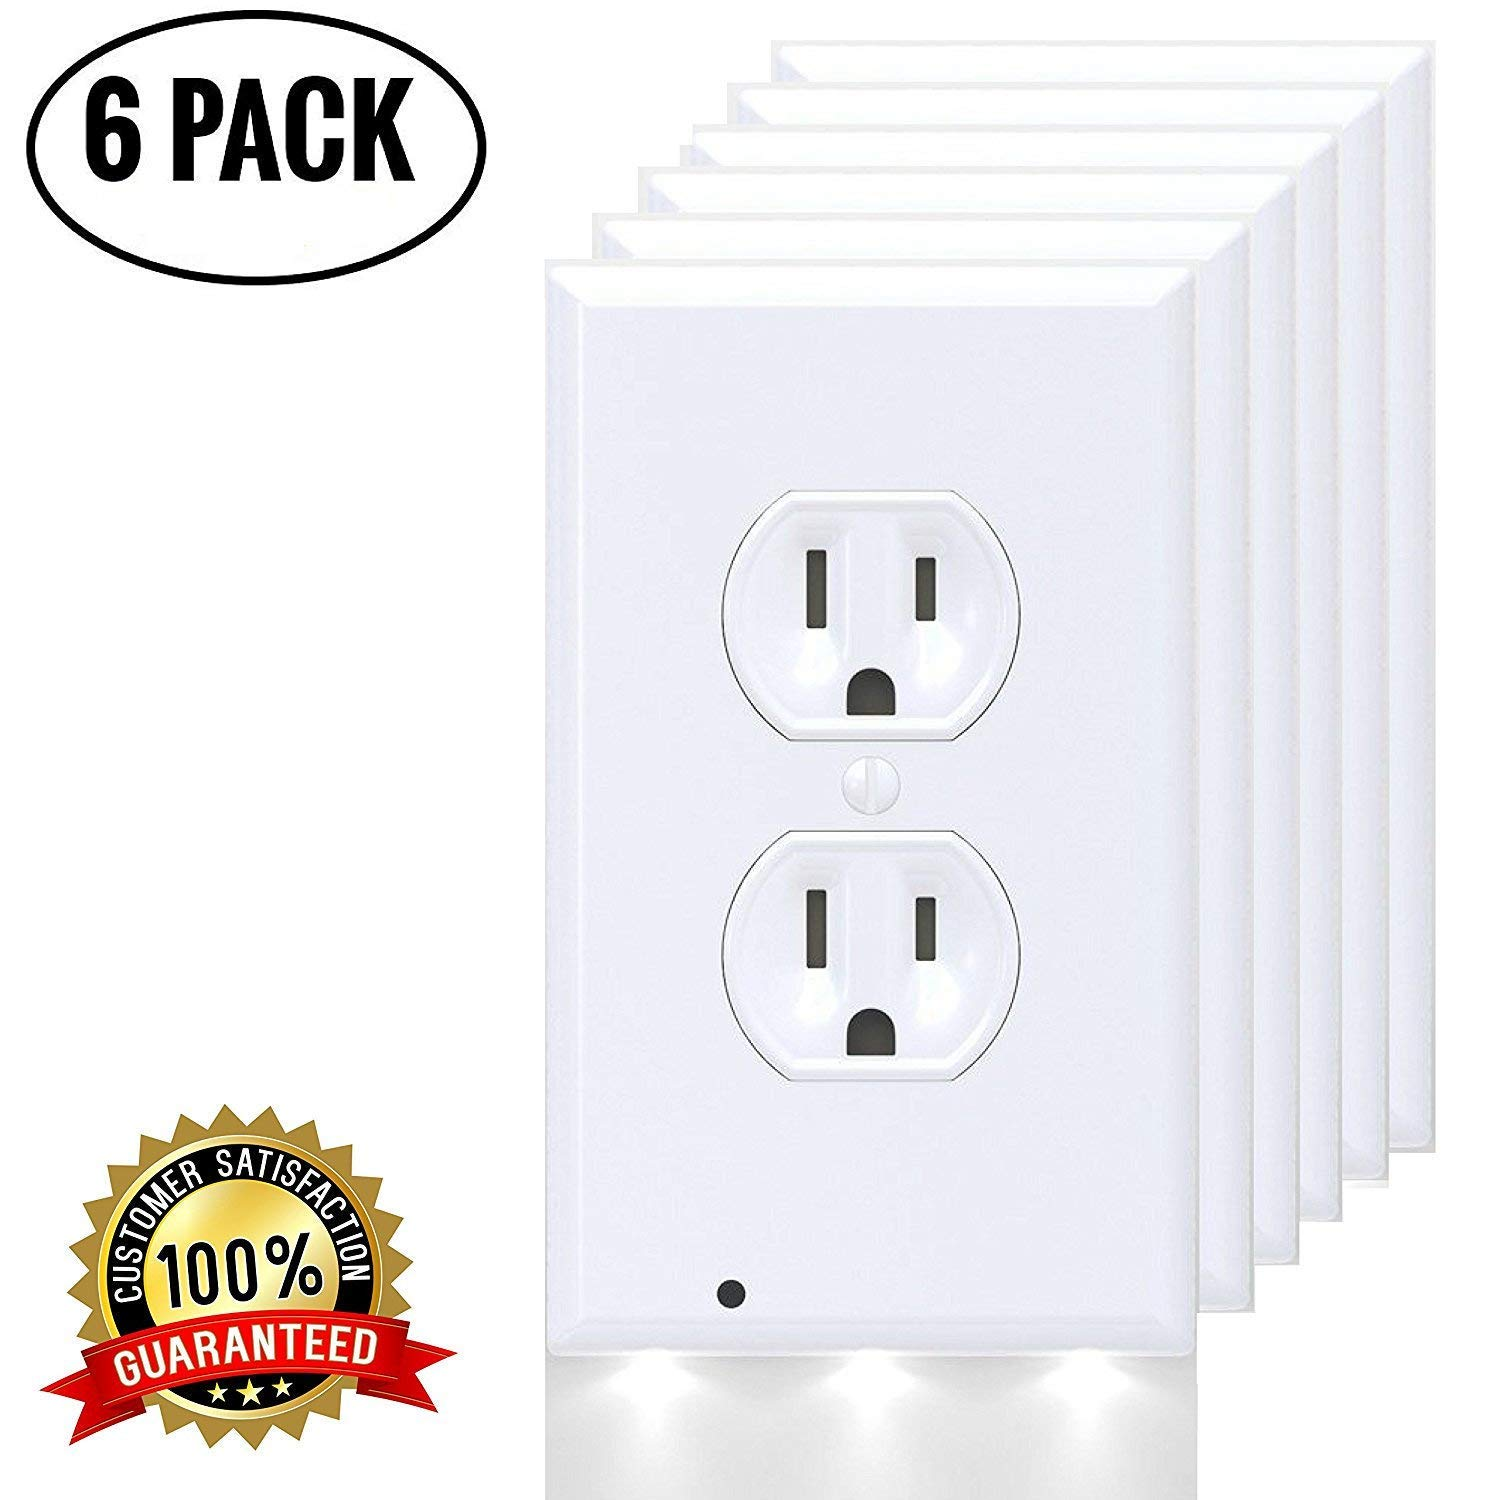 Blakell 6 Packs Outlet Cover, Electrical cover Plates Nightlight, Covers Plate Energy Efficient nightlights, Easy Installation Outlet Wall Plate for Your Home/Bathroom/Bedroom/Garage/Hallway/